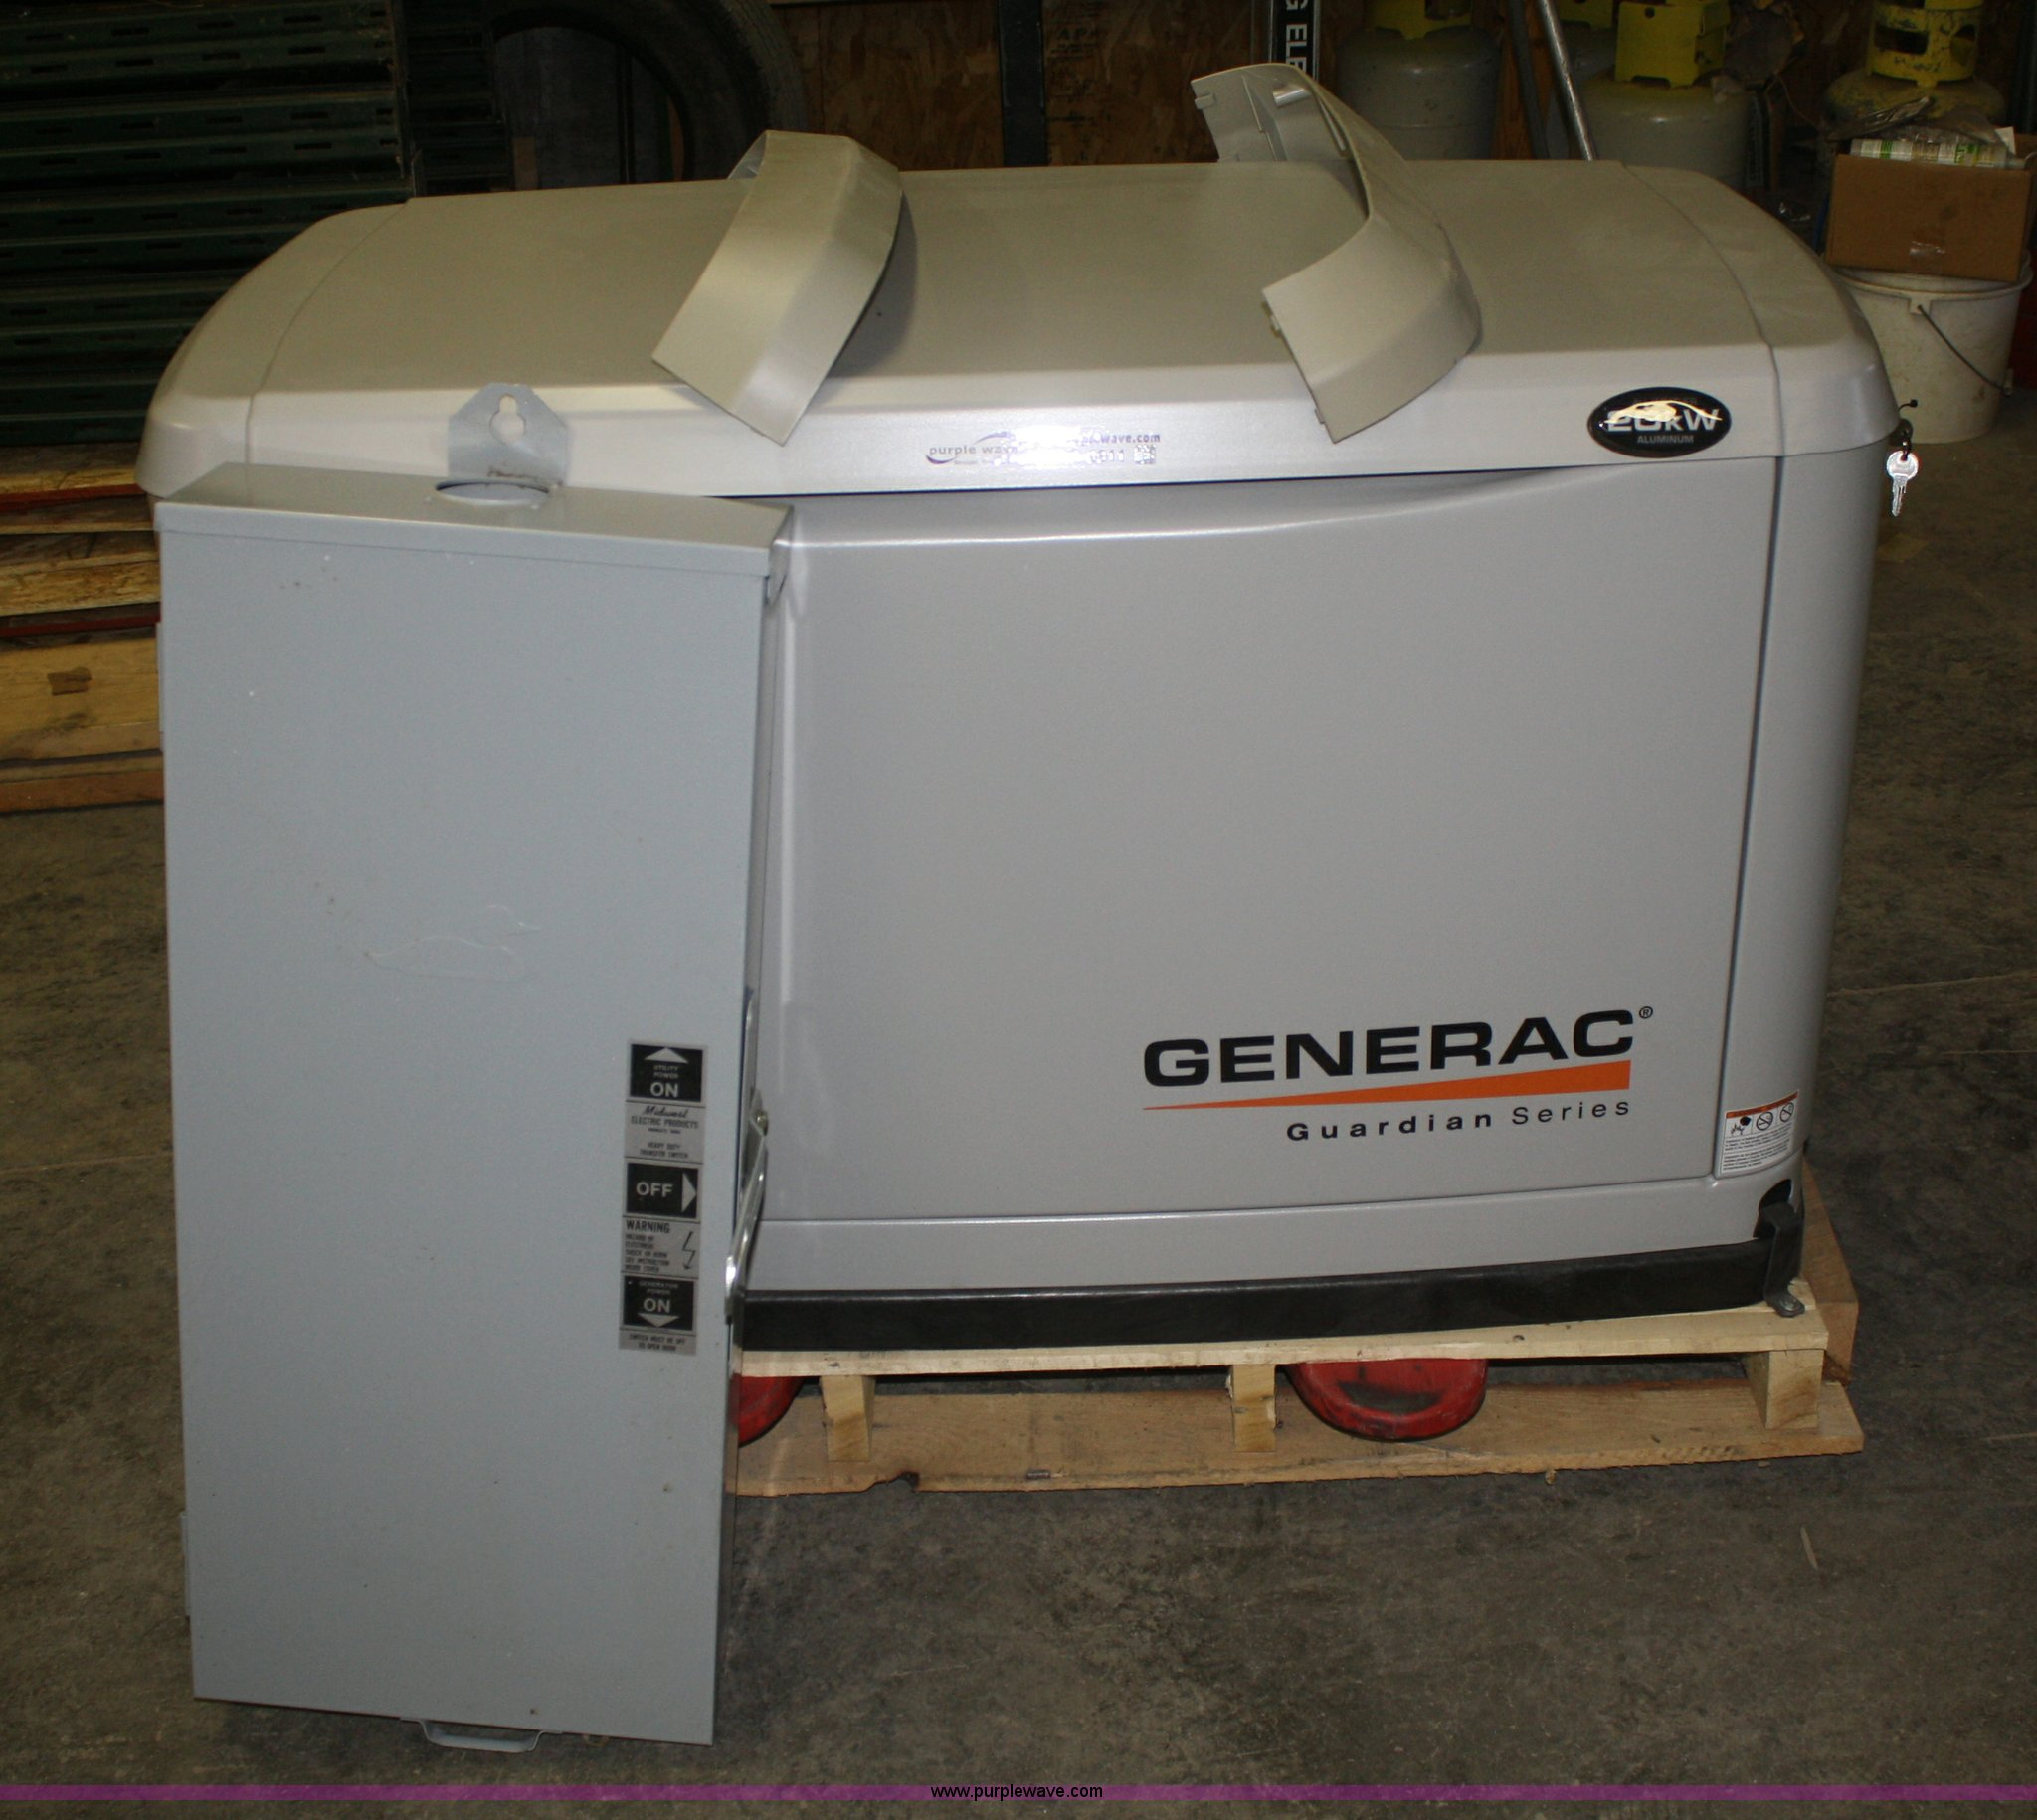 Generac Guardian Series 20 Kw Generator Item S9911 Sold